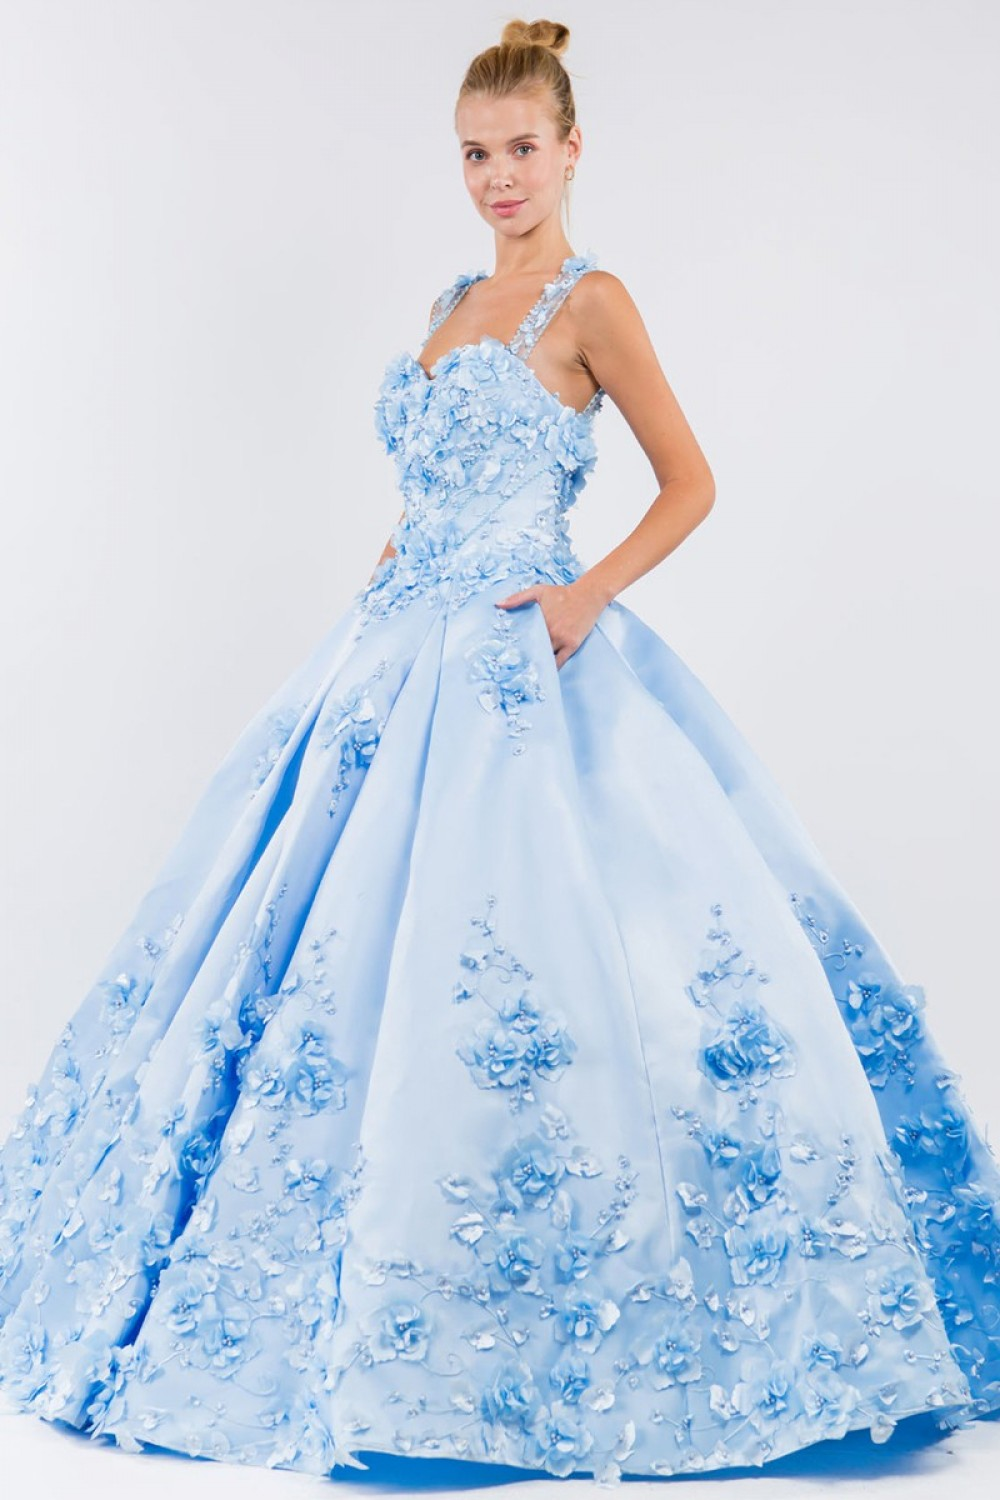 3D Floral Applique Satin Sweetheart Ball Gown